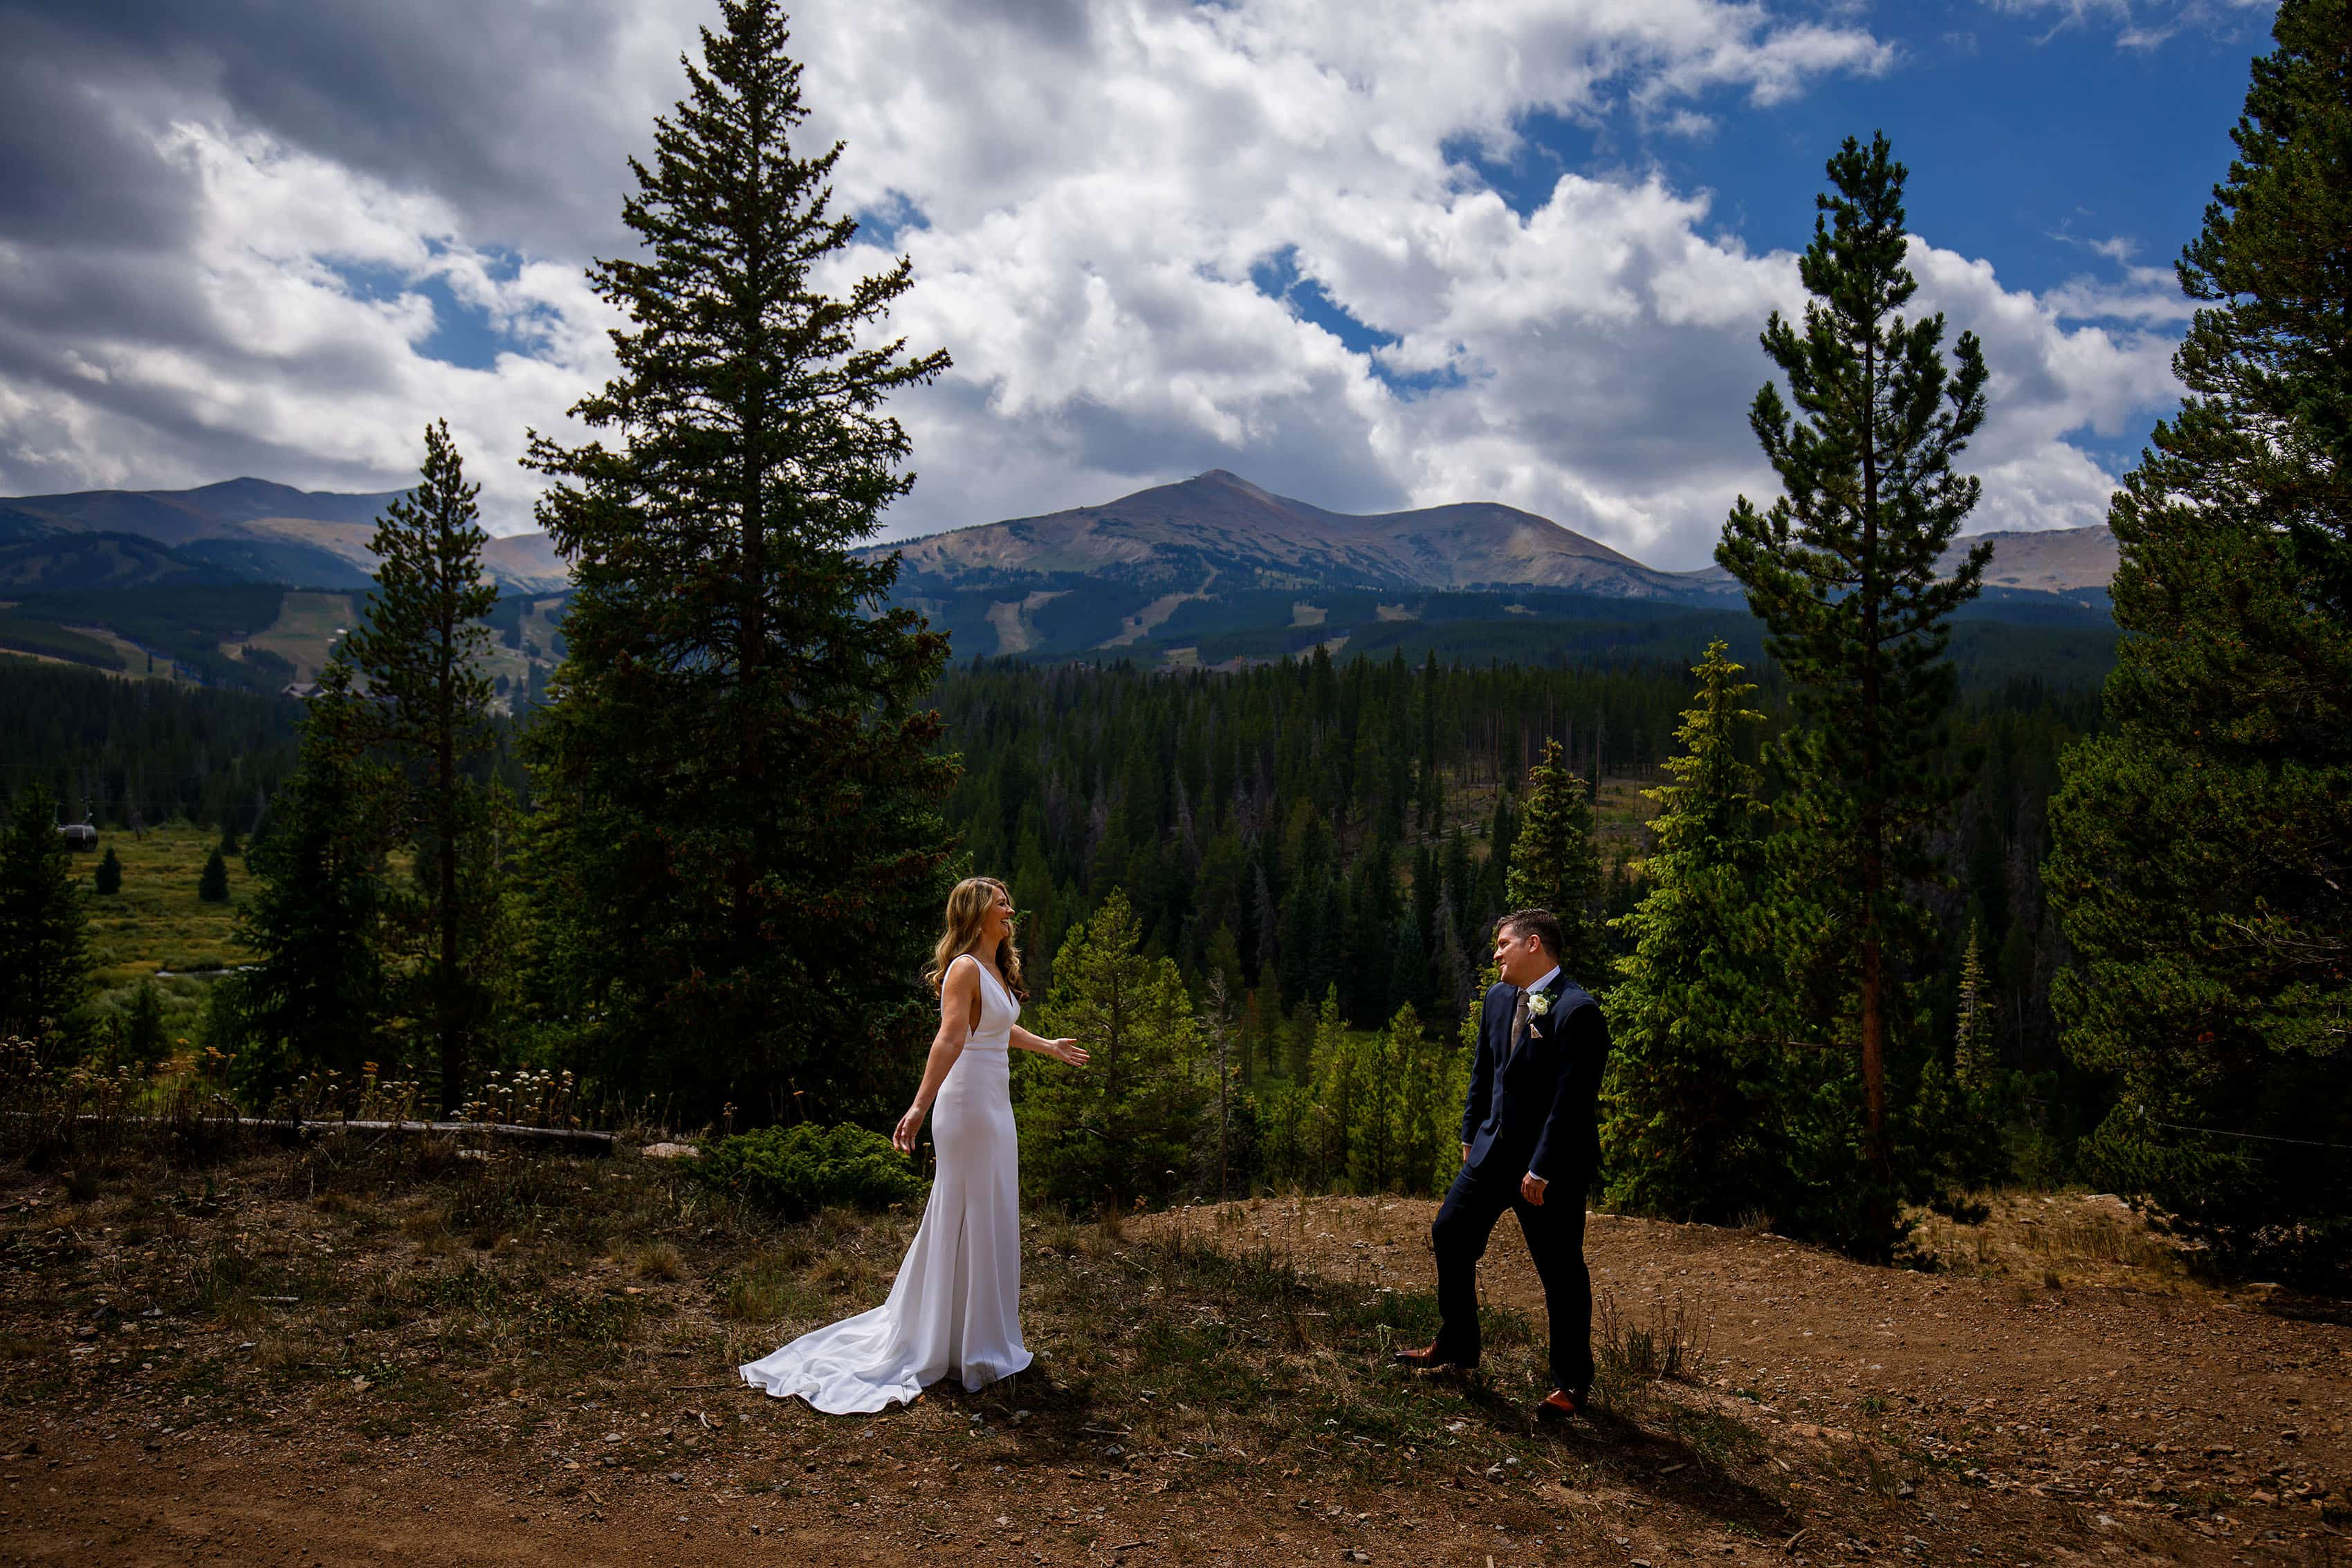 The bride and groom during their first look at Breckenridge resort